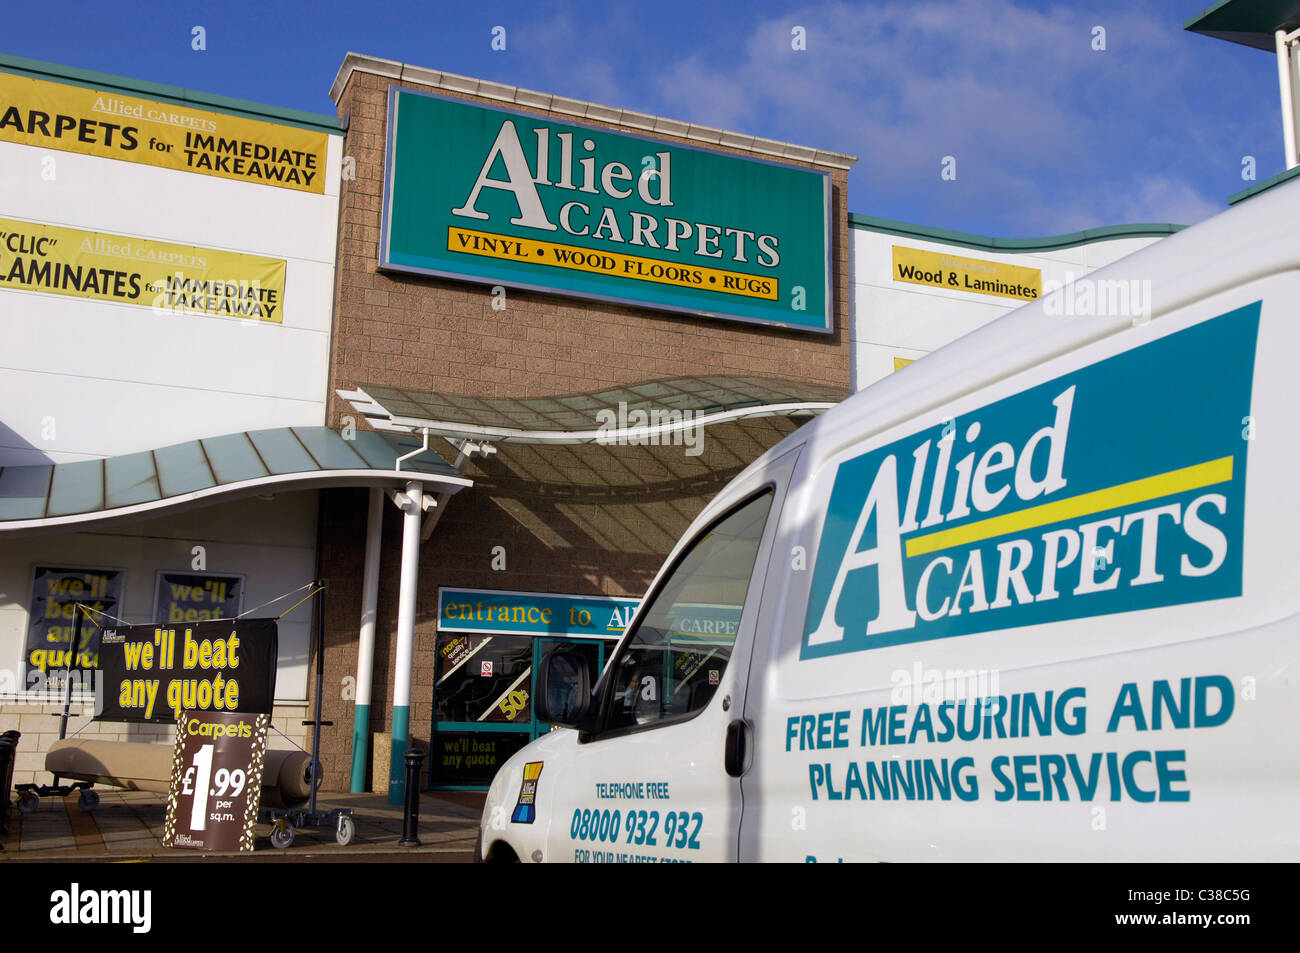 Allied Carpets Stock Photos Amp Allied Carpets Stock Images